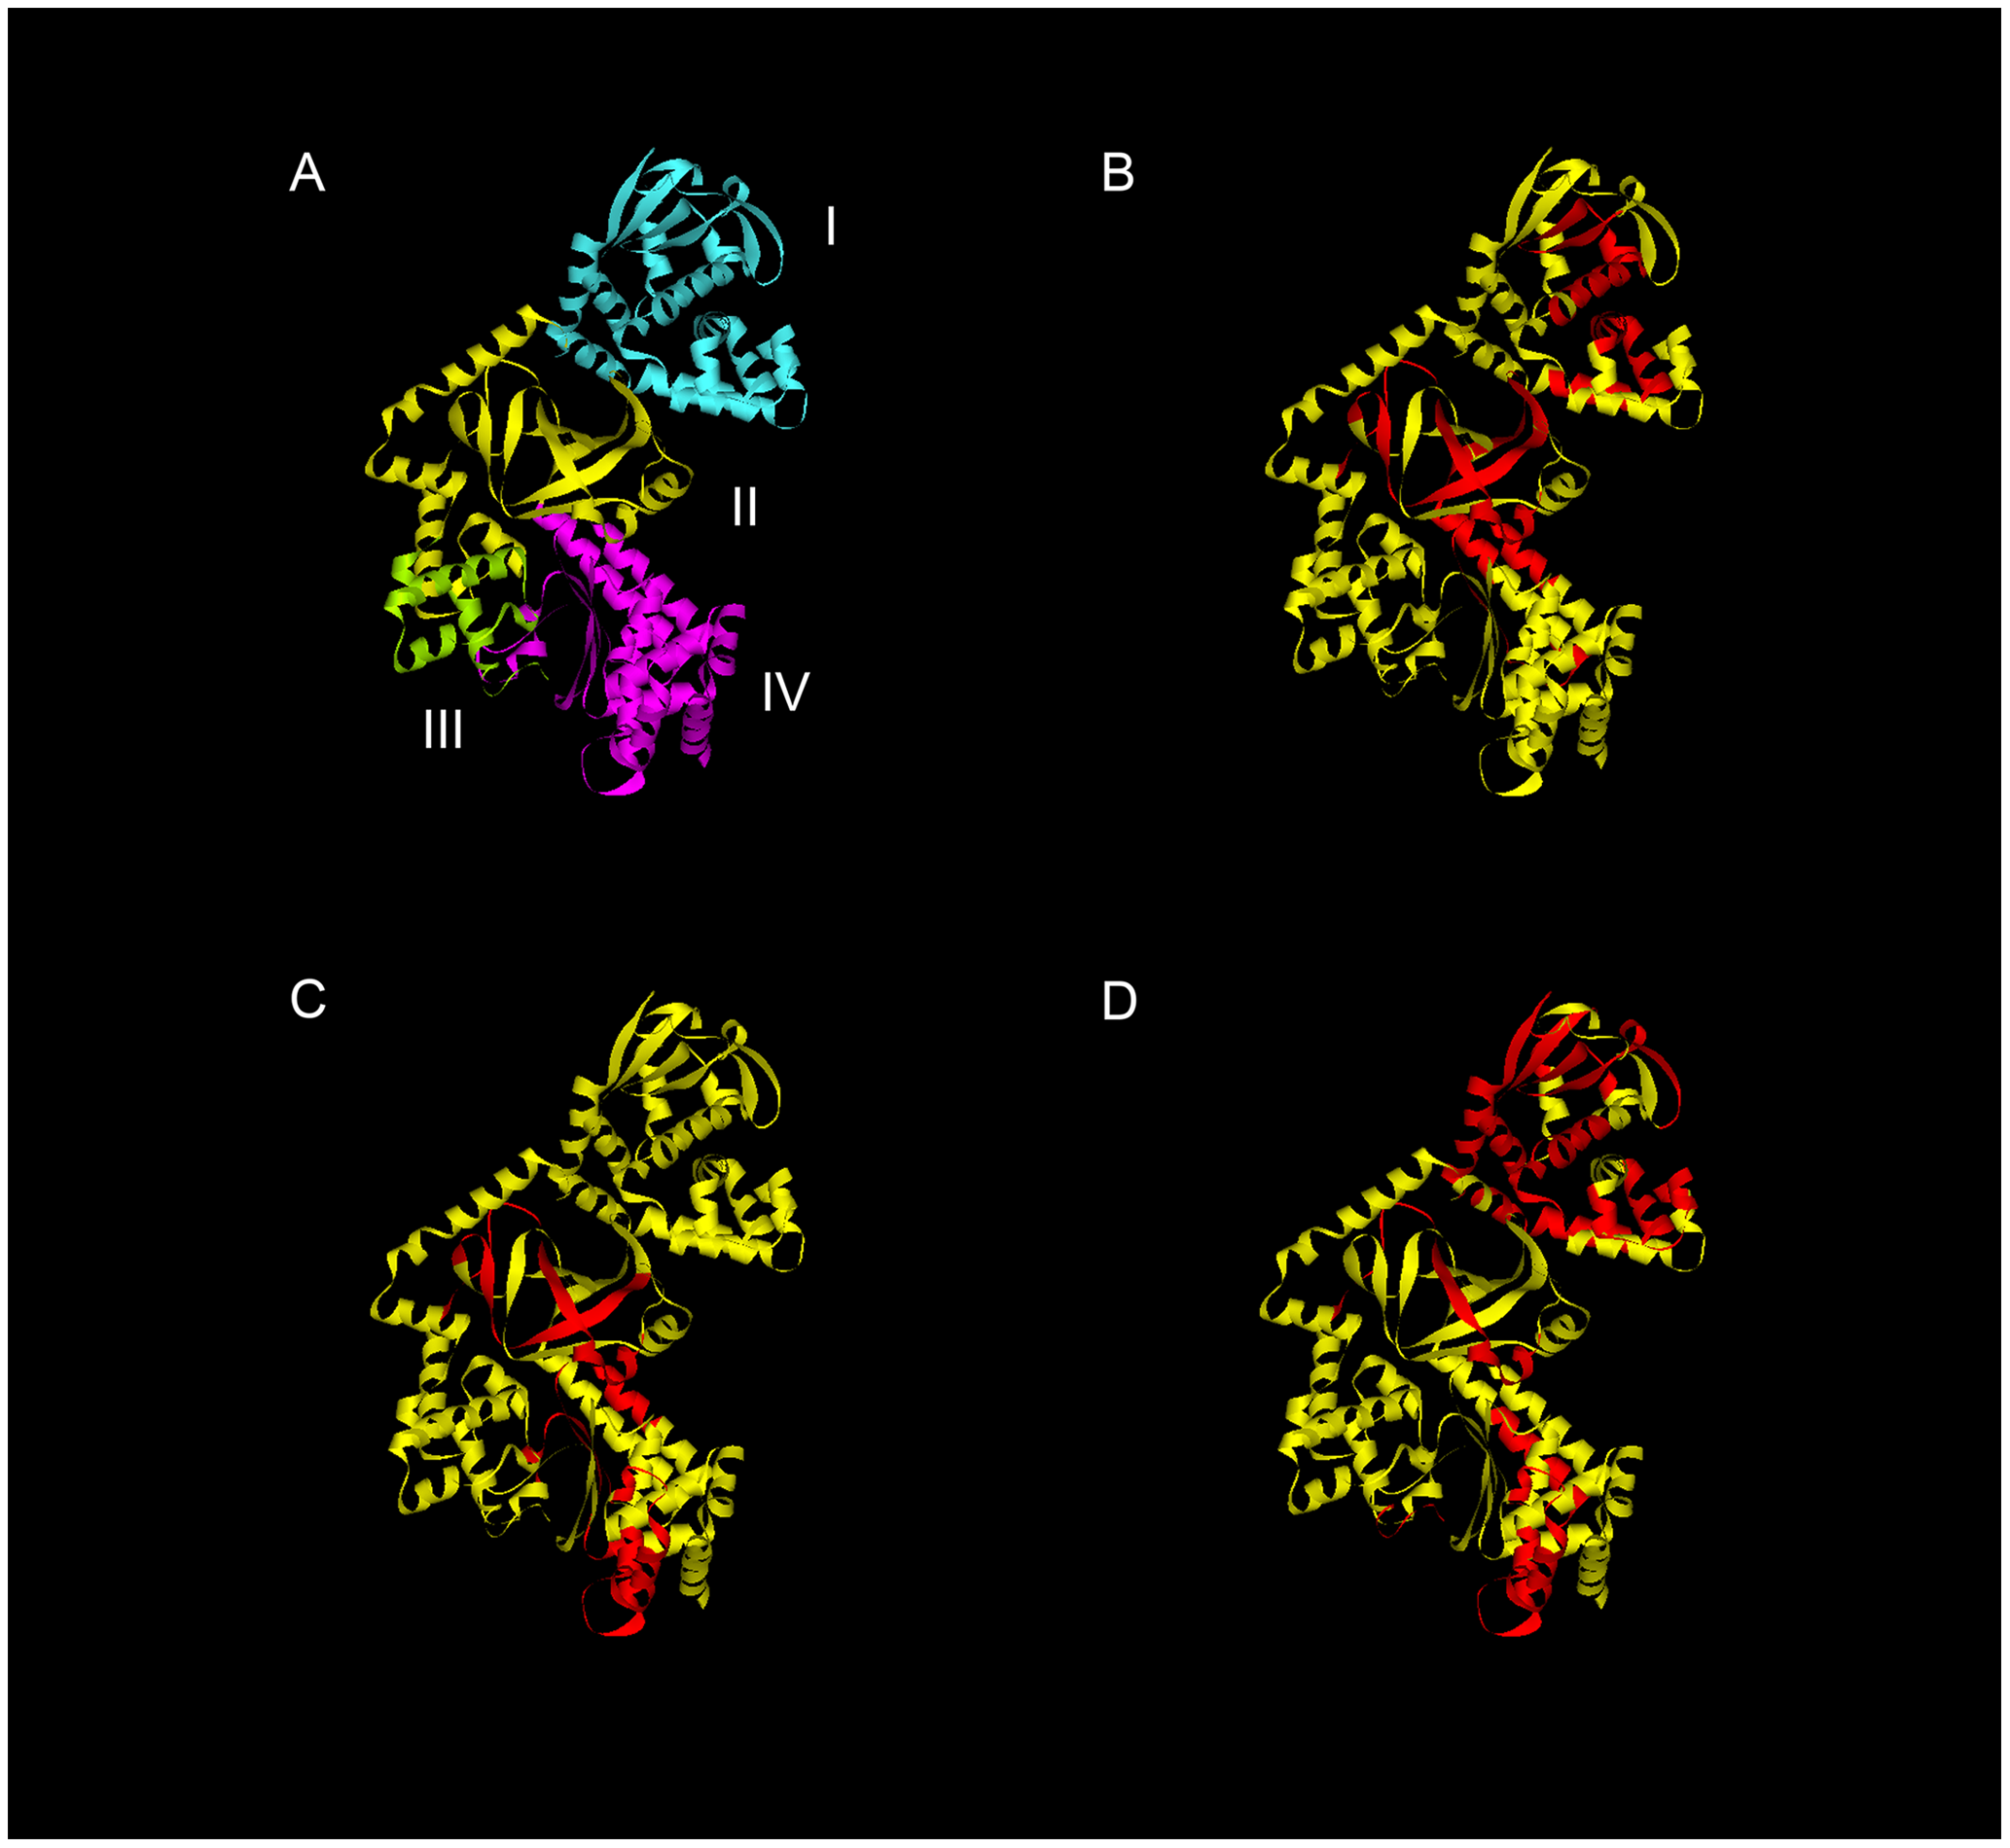 Regions HLA-DR and DQ-presented anthrax LF epitopes mapped onto the LF protein structure reveals clustering of immunogenic epitopes.